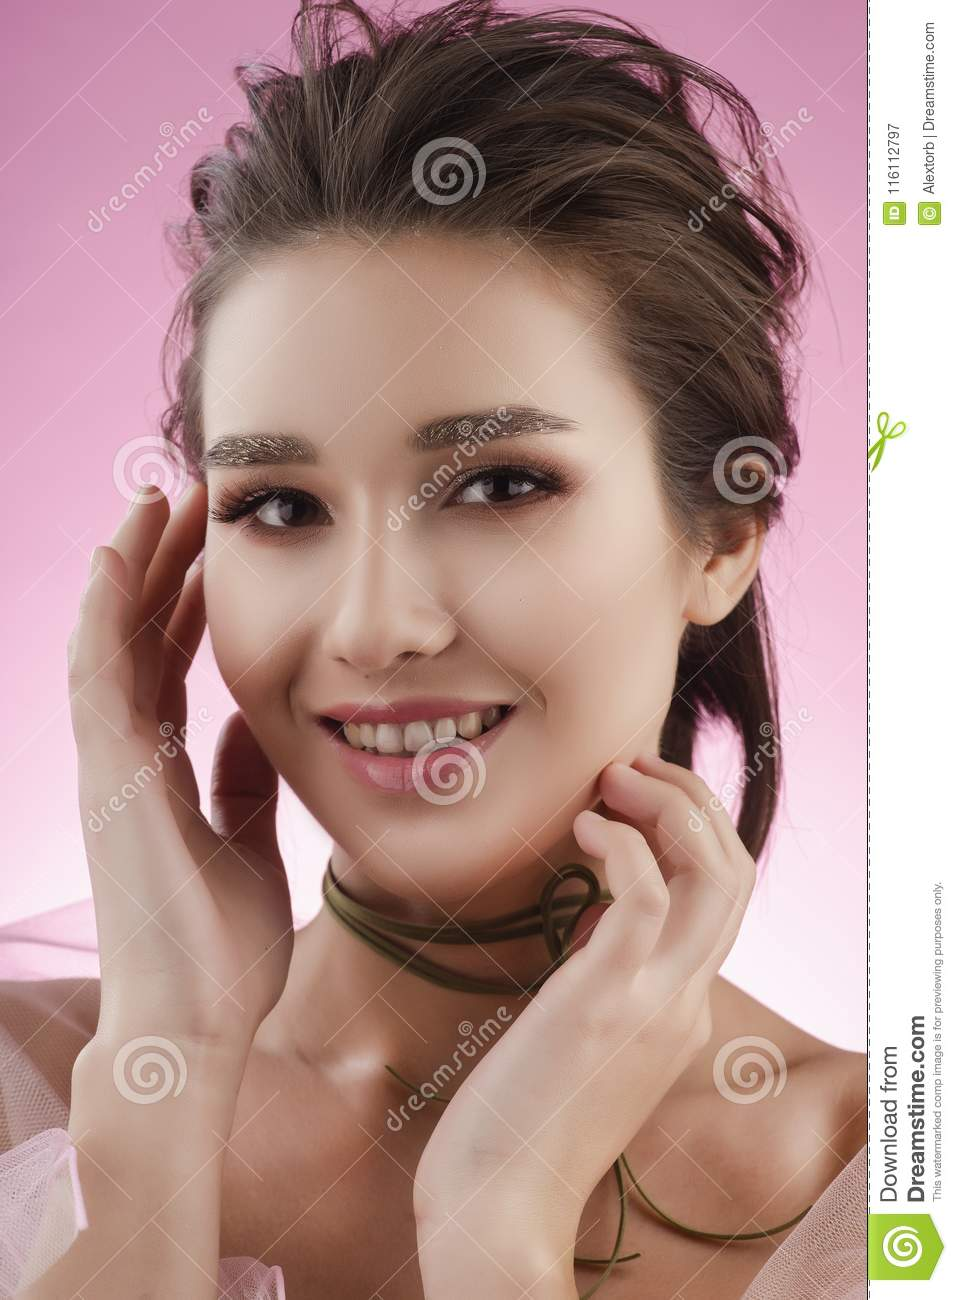 Beautiful Smiling Big Breast Asian Girl Wearing A Pink Veil On H Stock Image - Image -6526